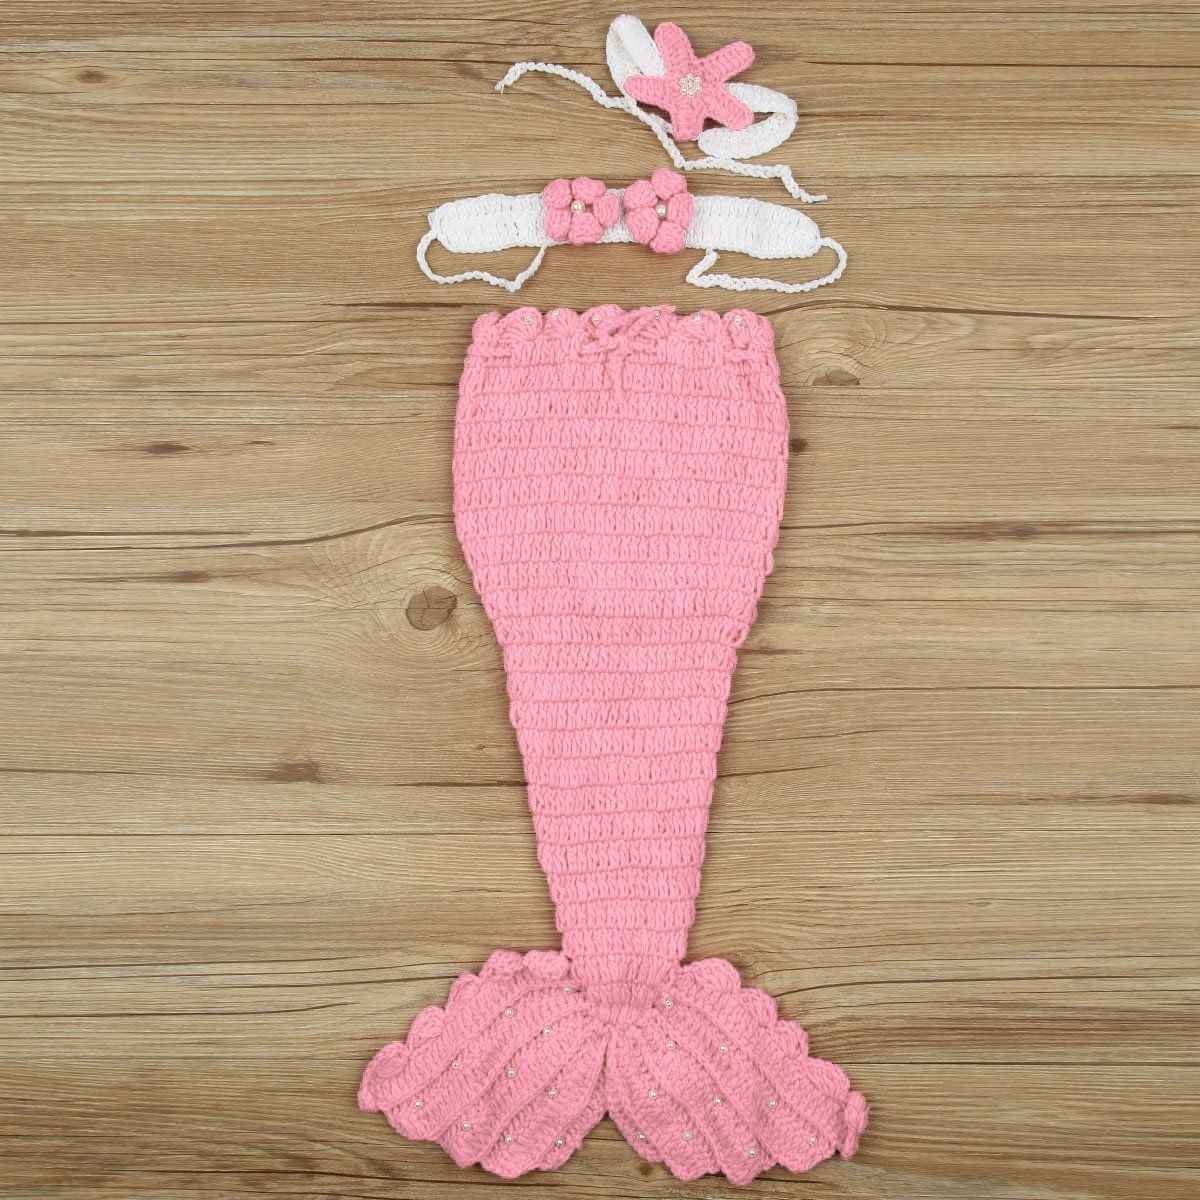 Amazing Crochet Mermaid Pattern for Baby's Mermaid Tail Detail Feedback Questions About Infant Newborn Ba Mermaid Fishtail